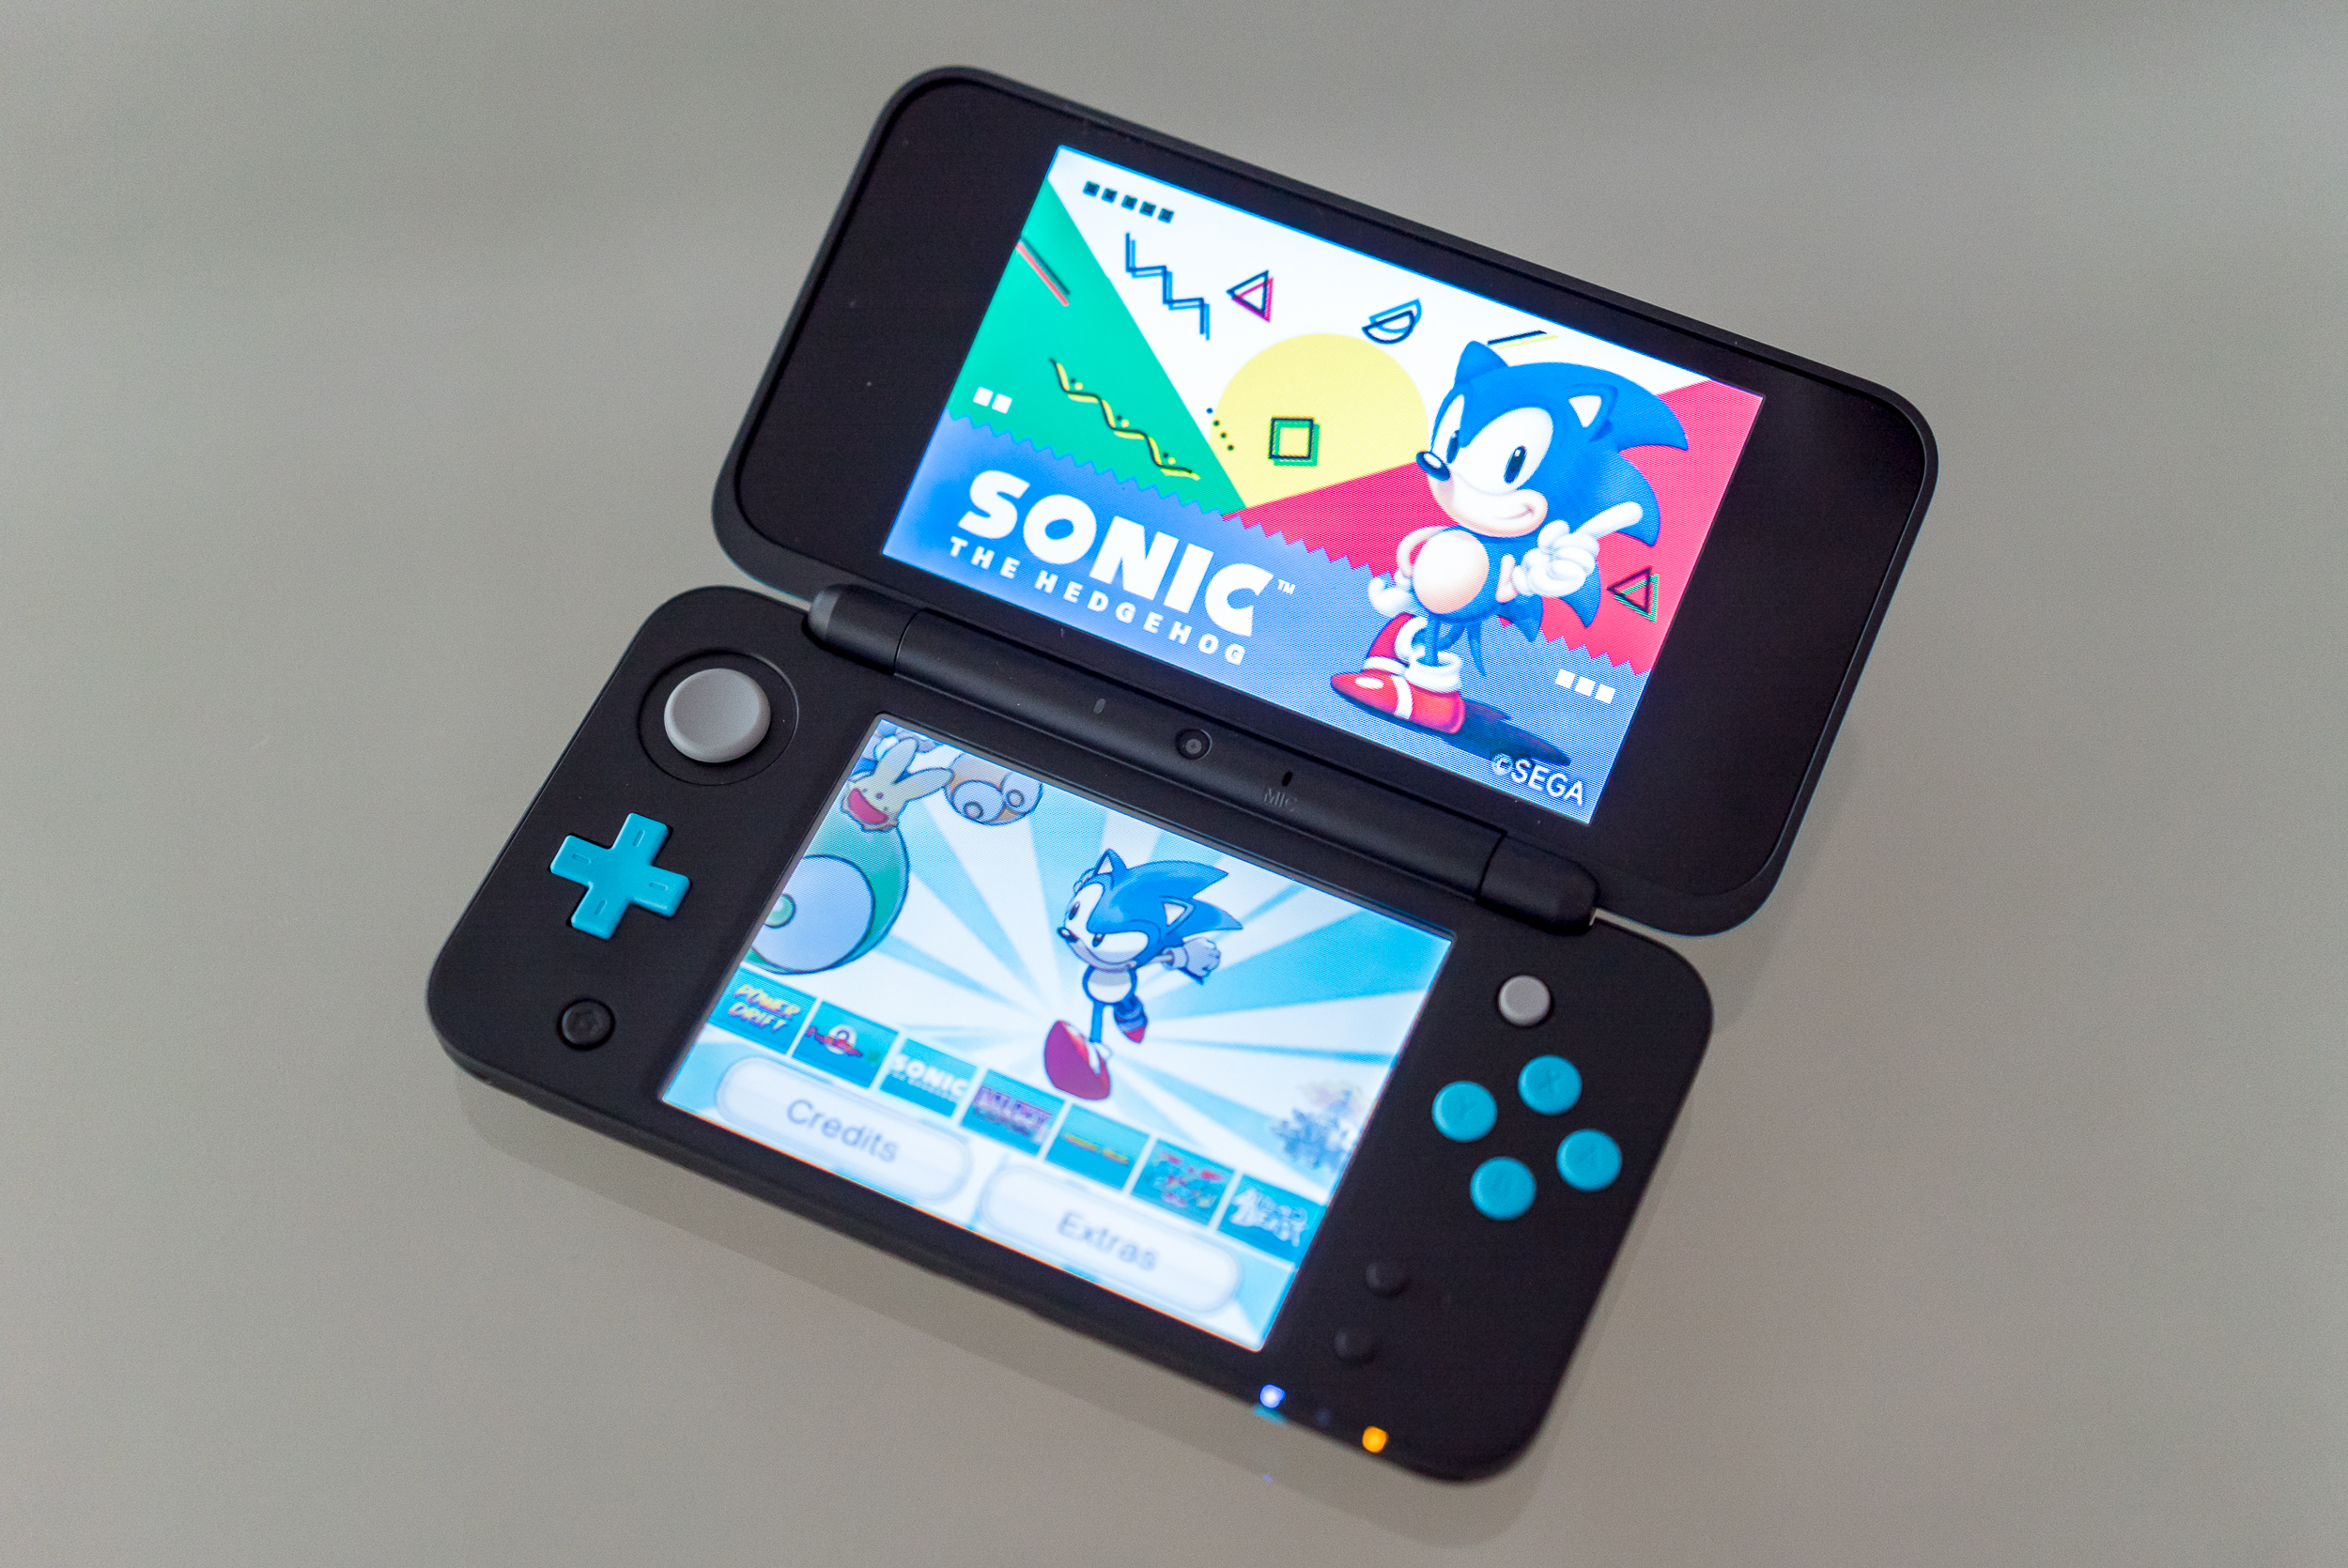 Nintendo New 2DS XL mini-review: The best version of the 3DS ...